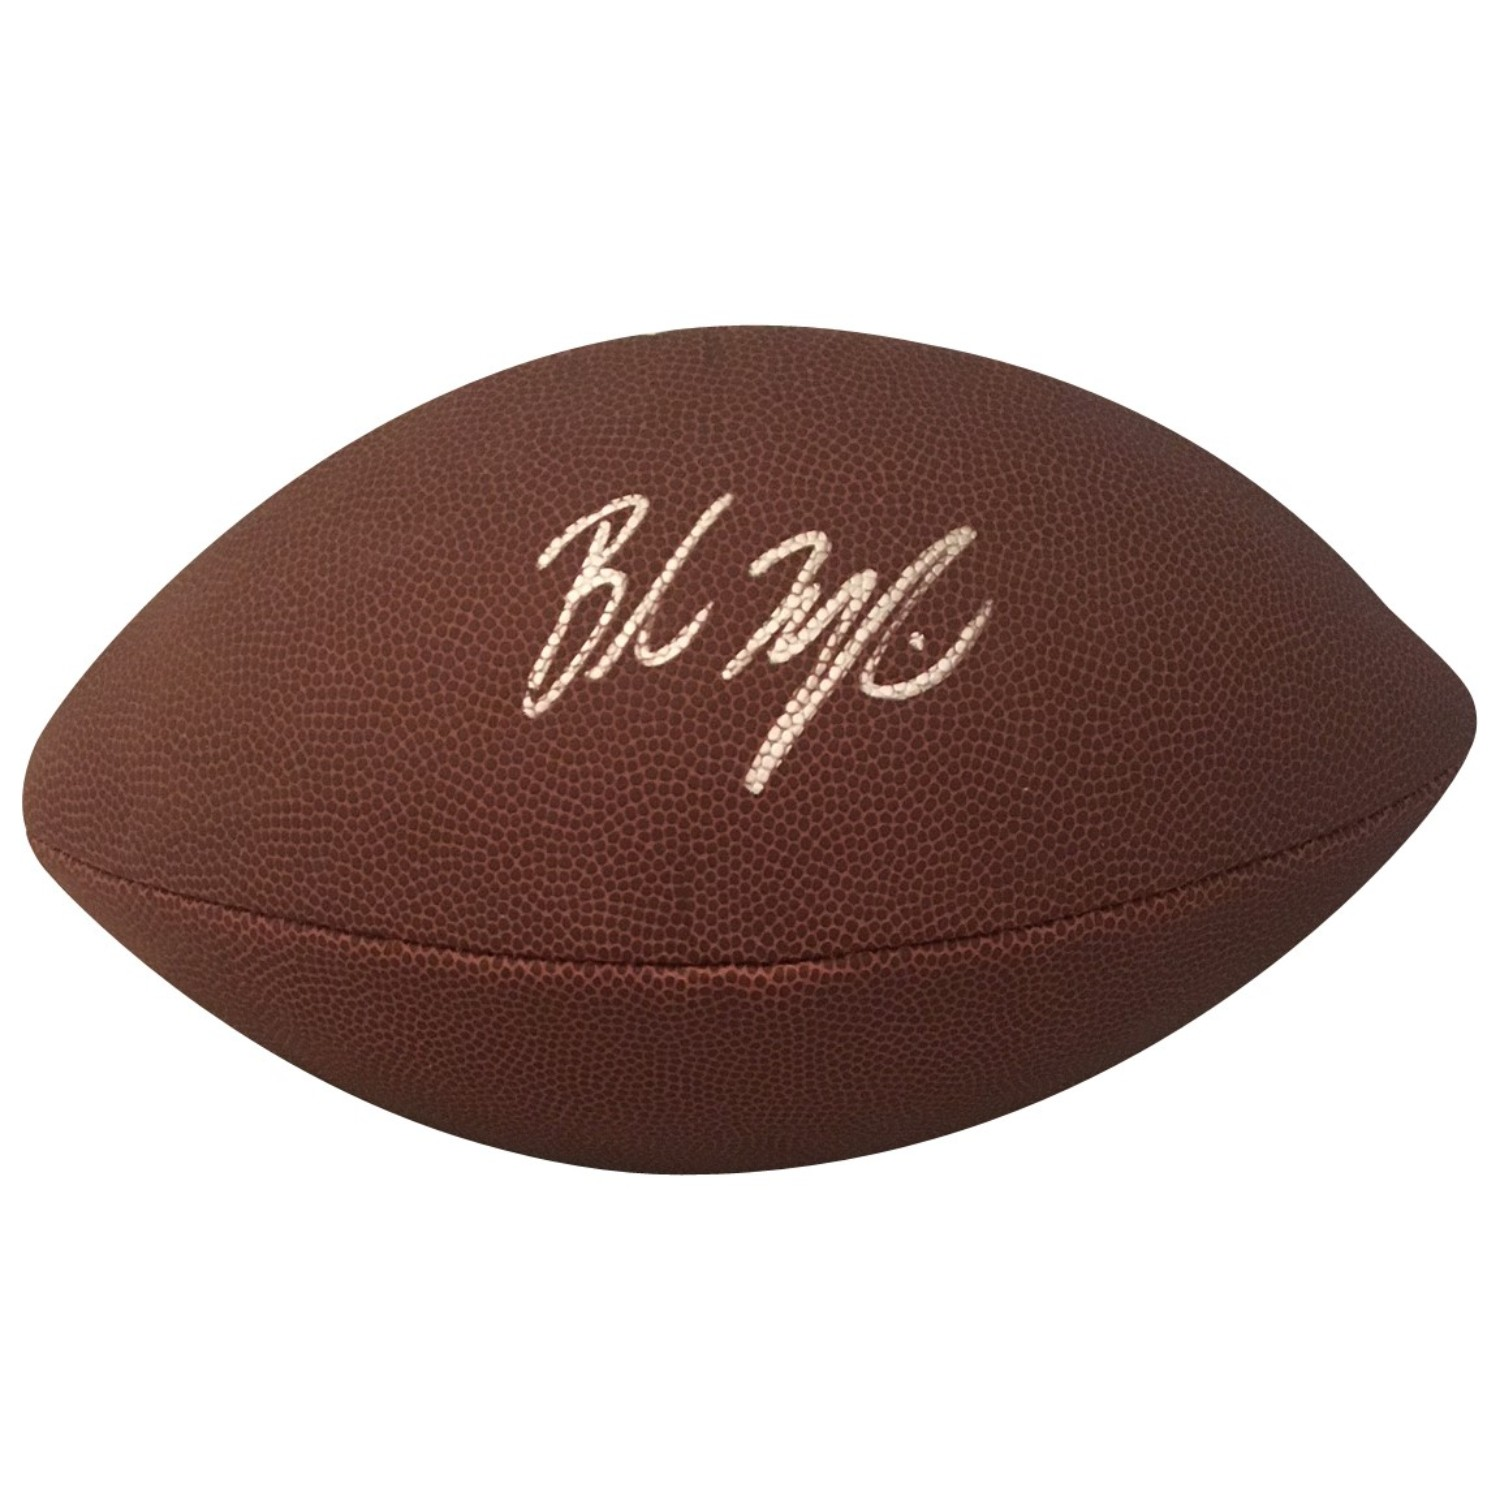 Baker Mayfield Cleveland Browns Oklahoma Sooners Autographed NFL Signed Football PSA DNA COA